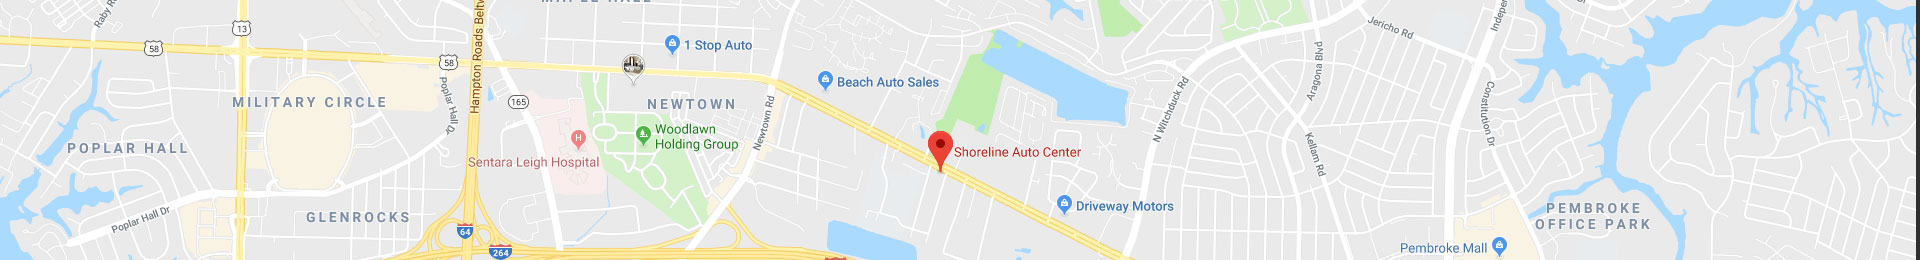 Directions to Shoreline Auto Center